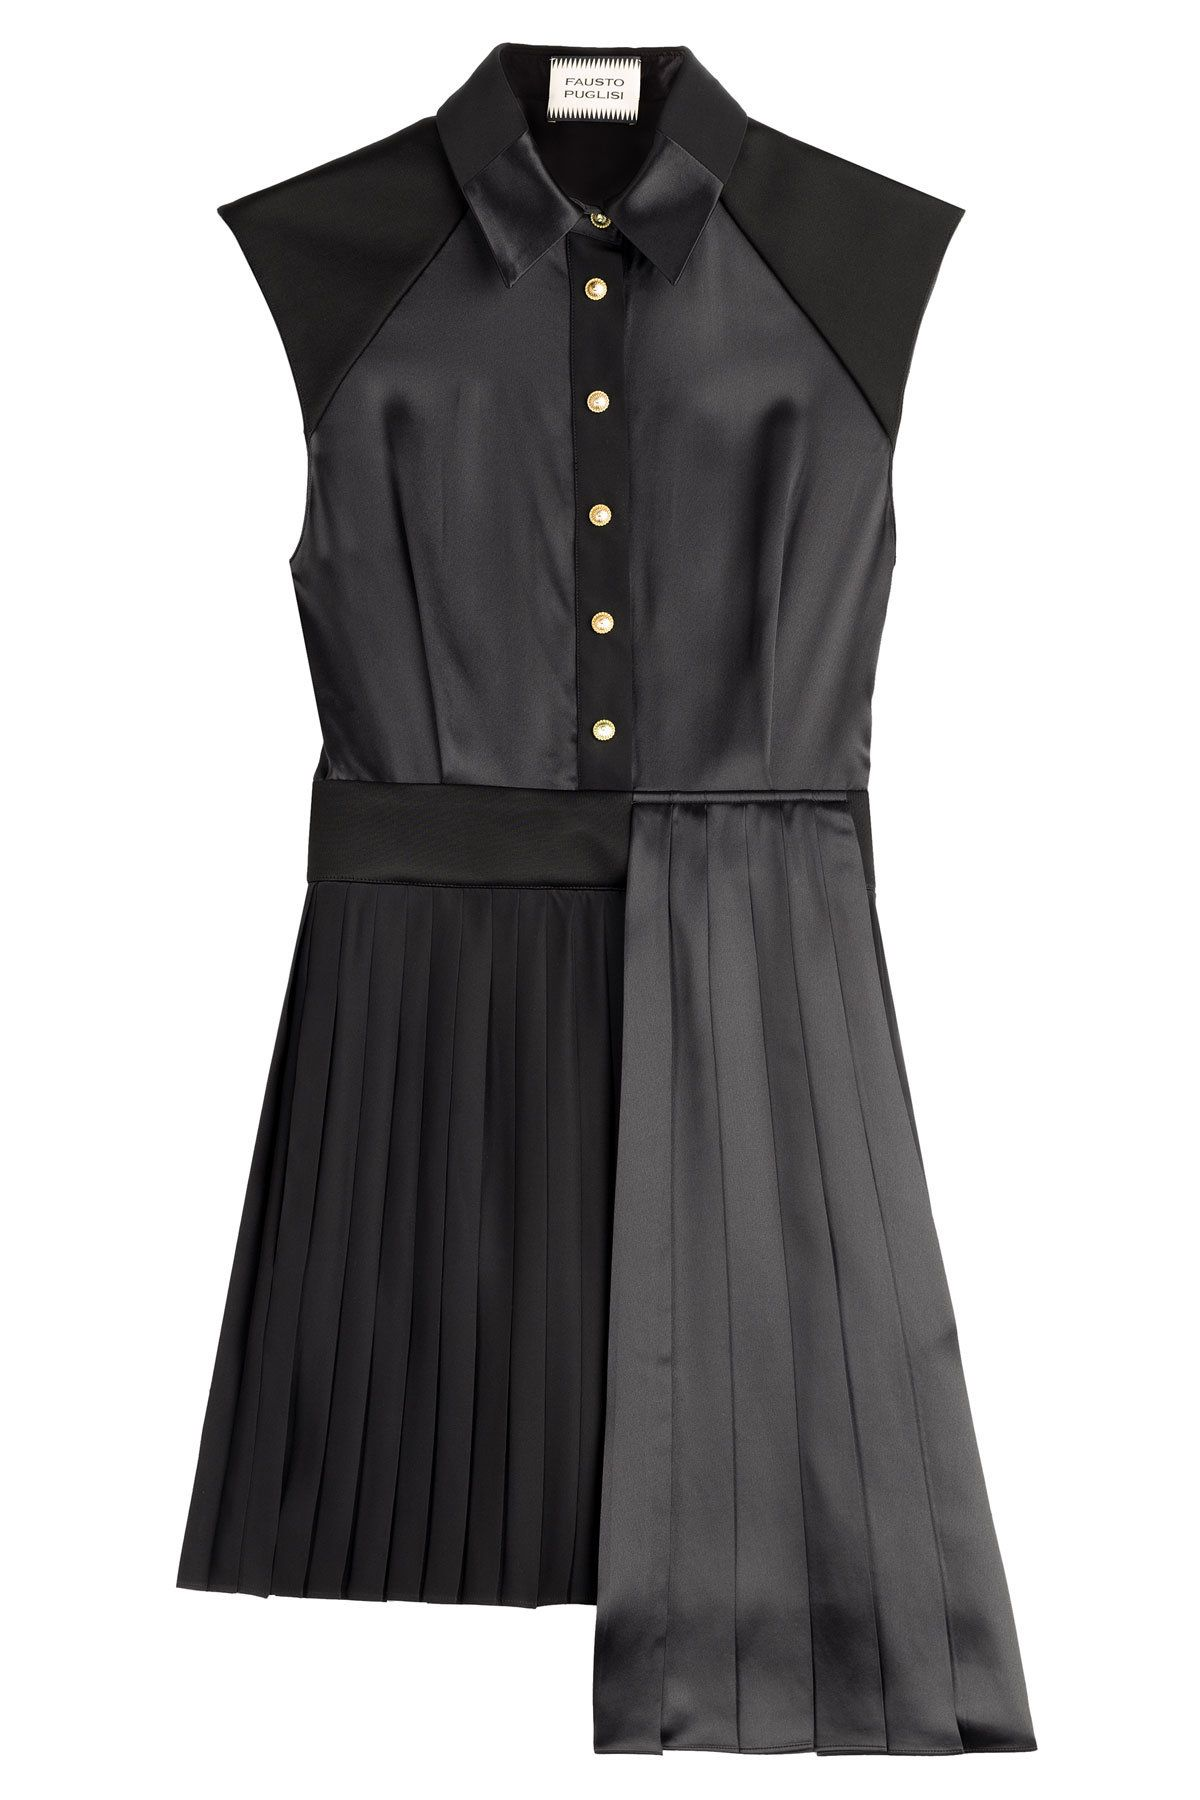 ab38e28153a Fausto Puglisi - Asymmetric Dress with Pleated Skirt